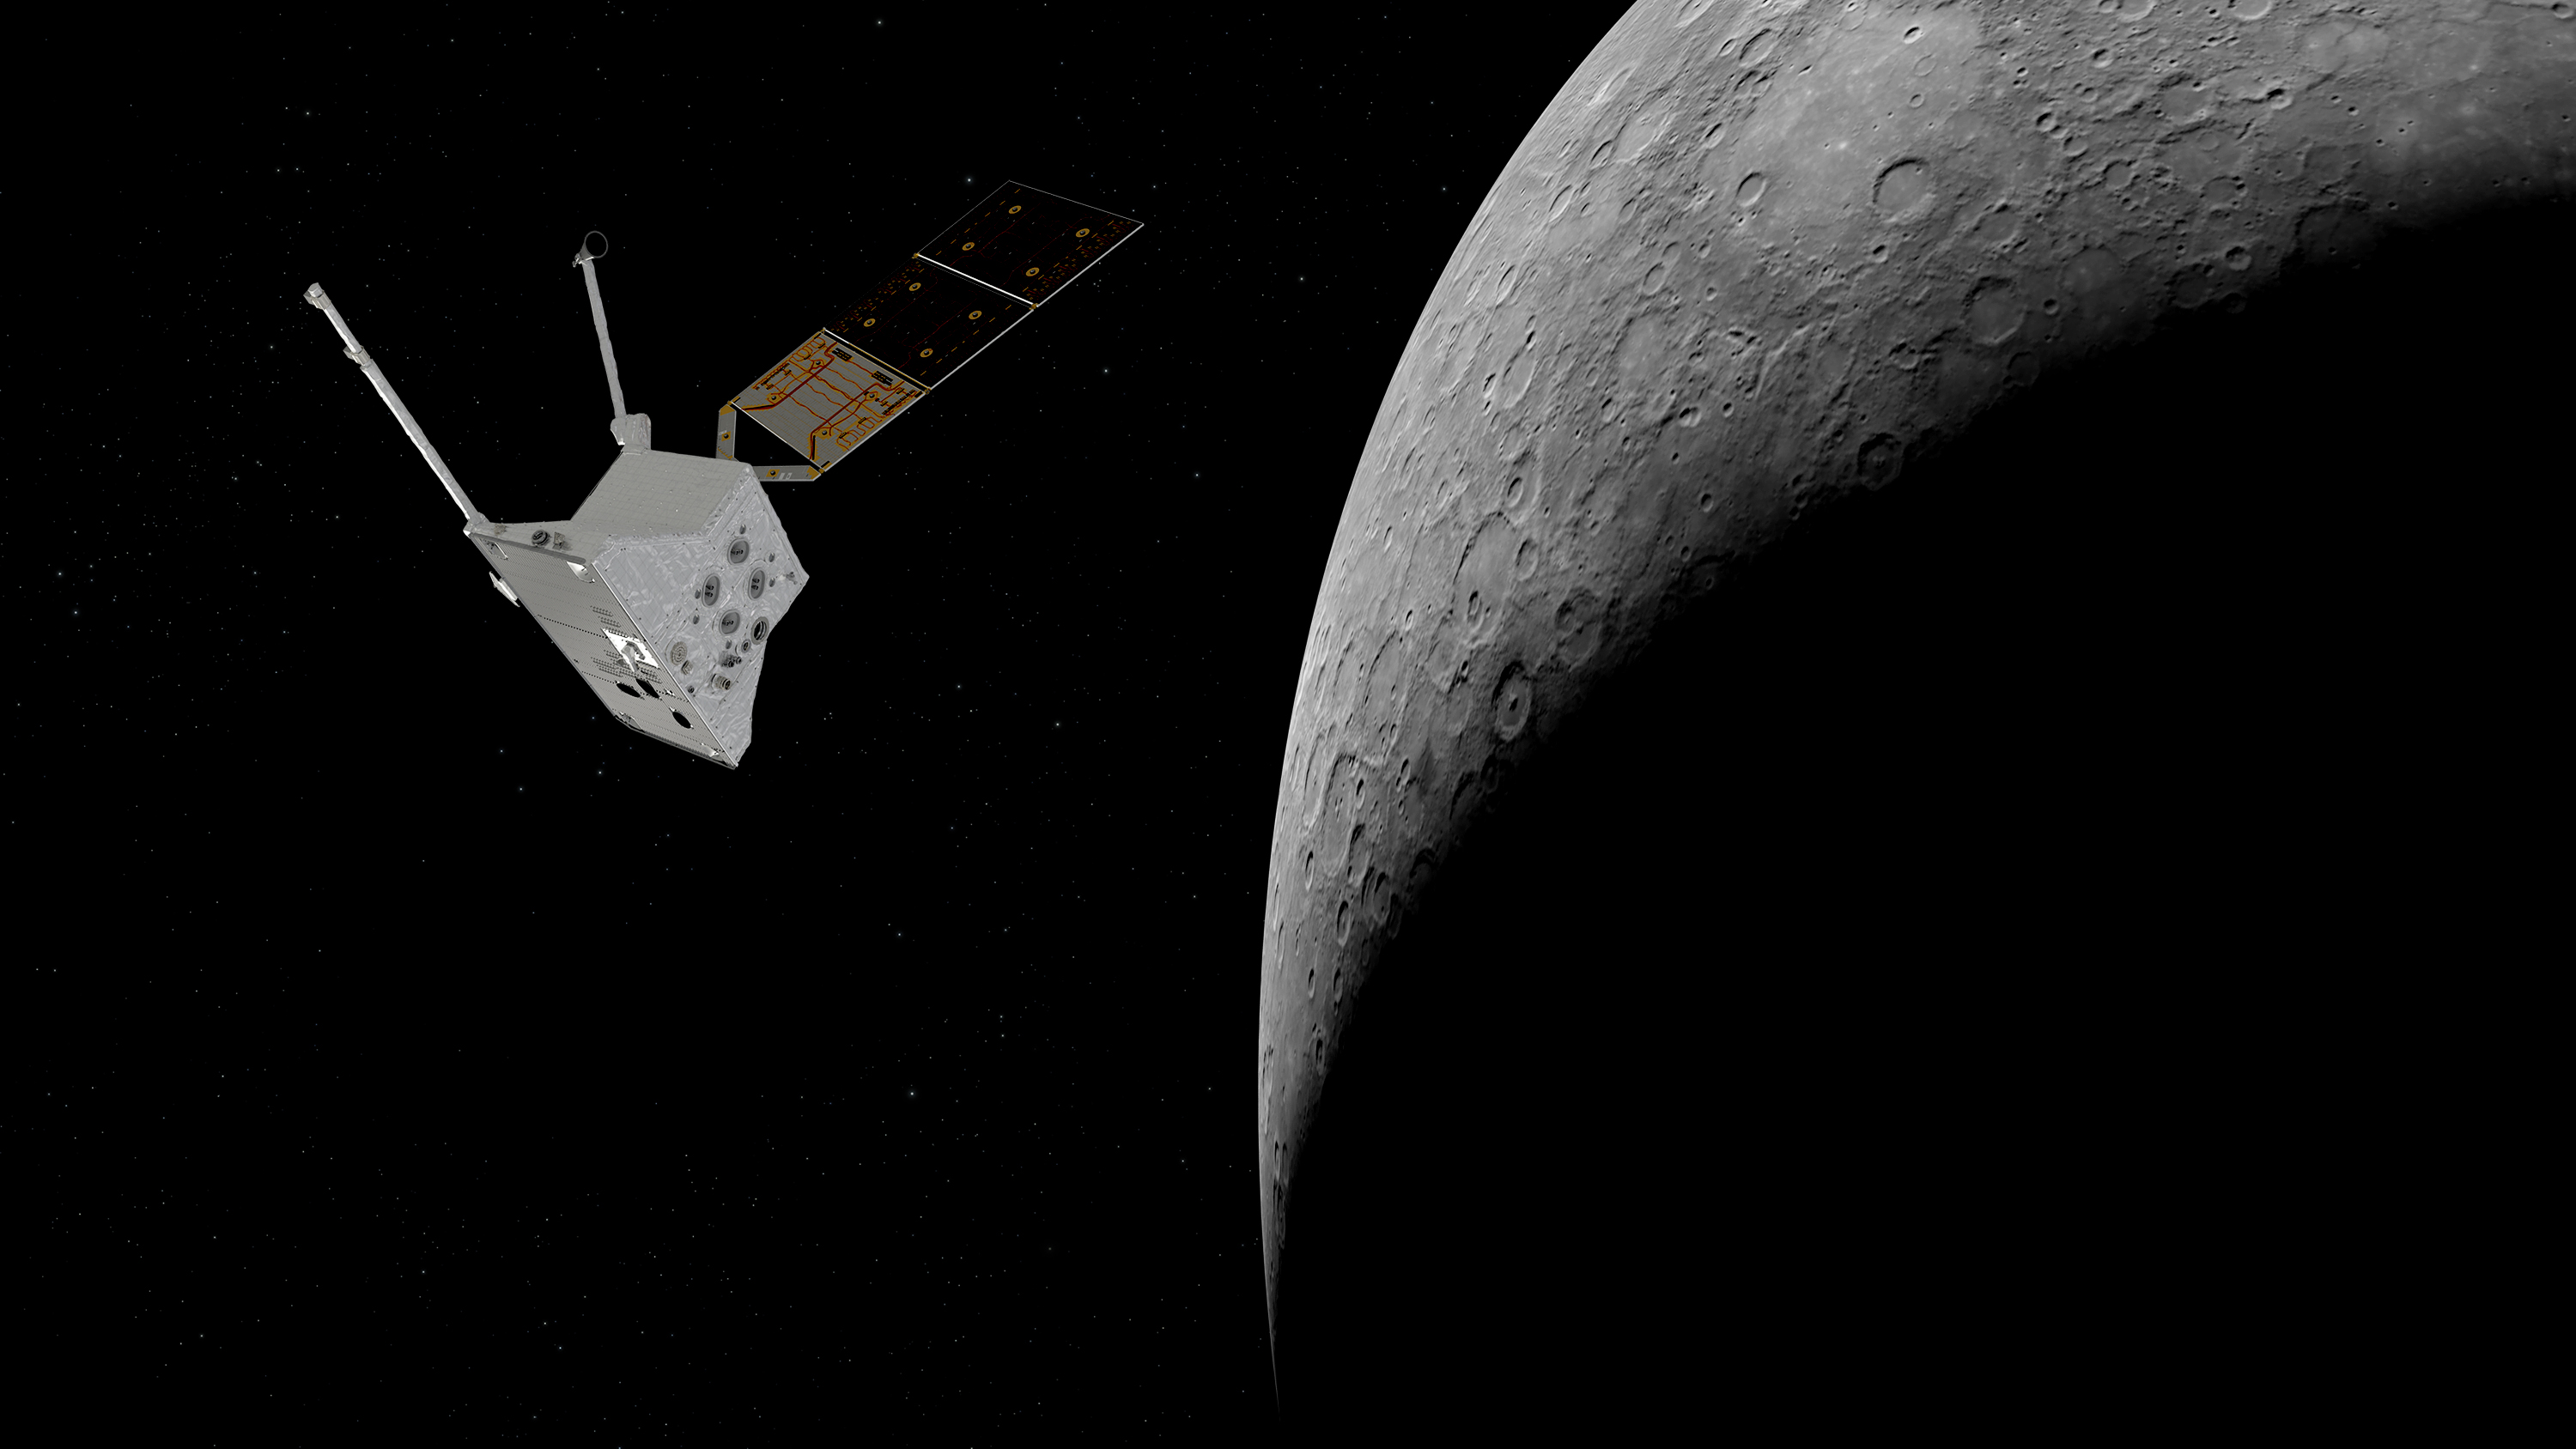 Mercury Planetary Orbiter at Mercury. Copyright spacecraft: ESA/ATG medialab; Mercury: NASA/Johns Hopkins University Applied Physics Laboratory/Carnegie Institution of Washington